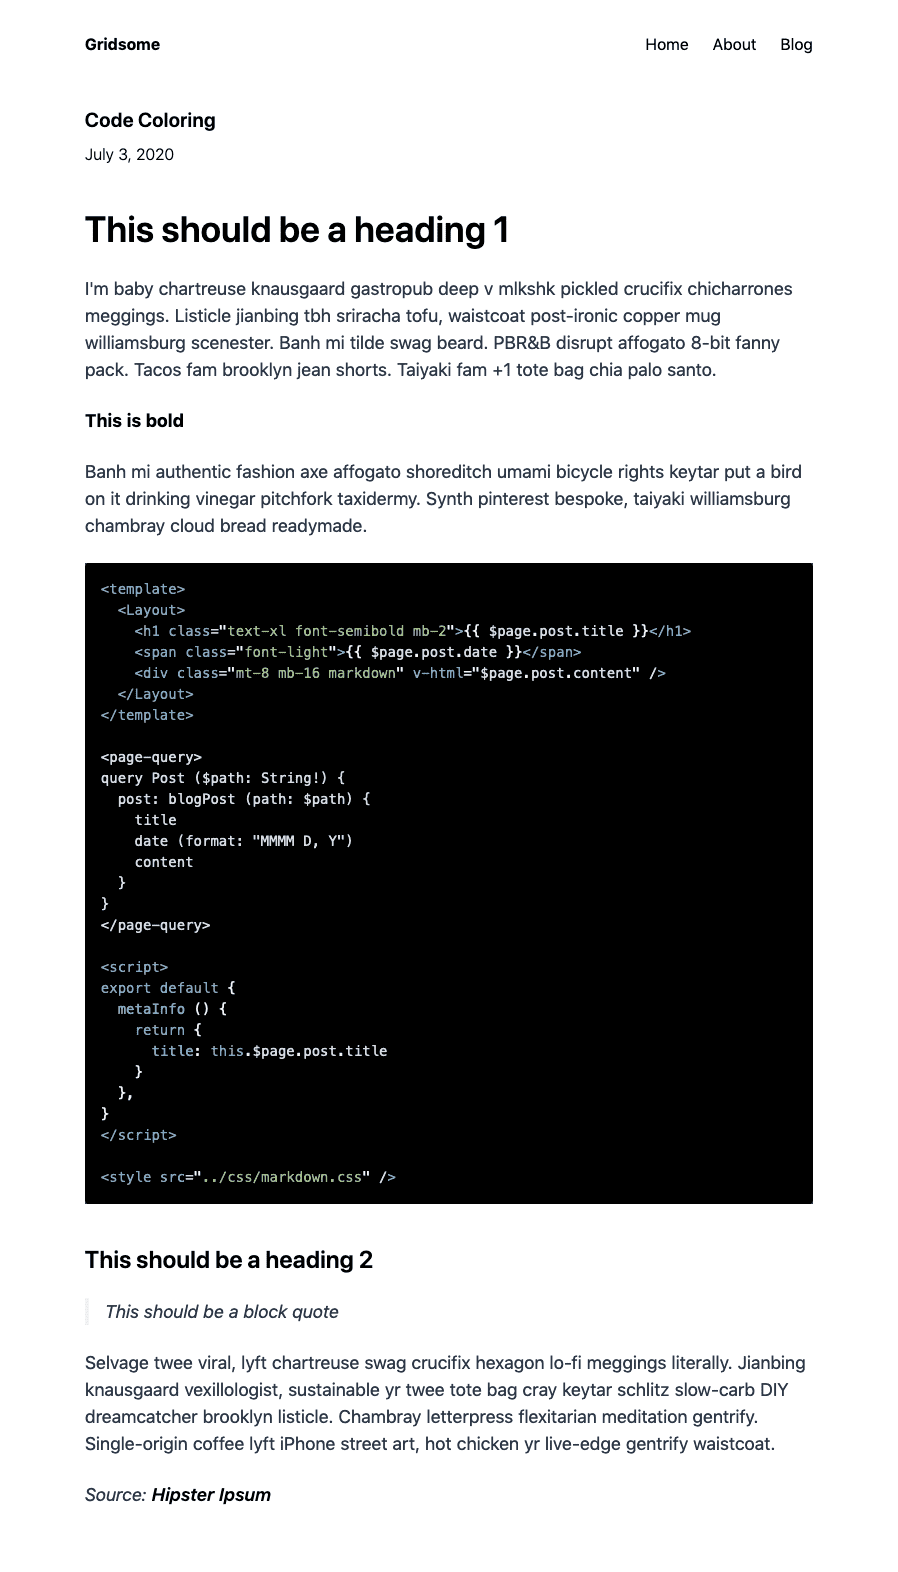 Blog post with syntax highlighting